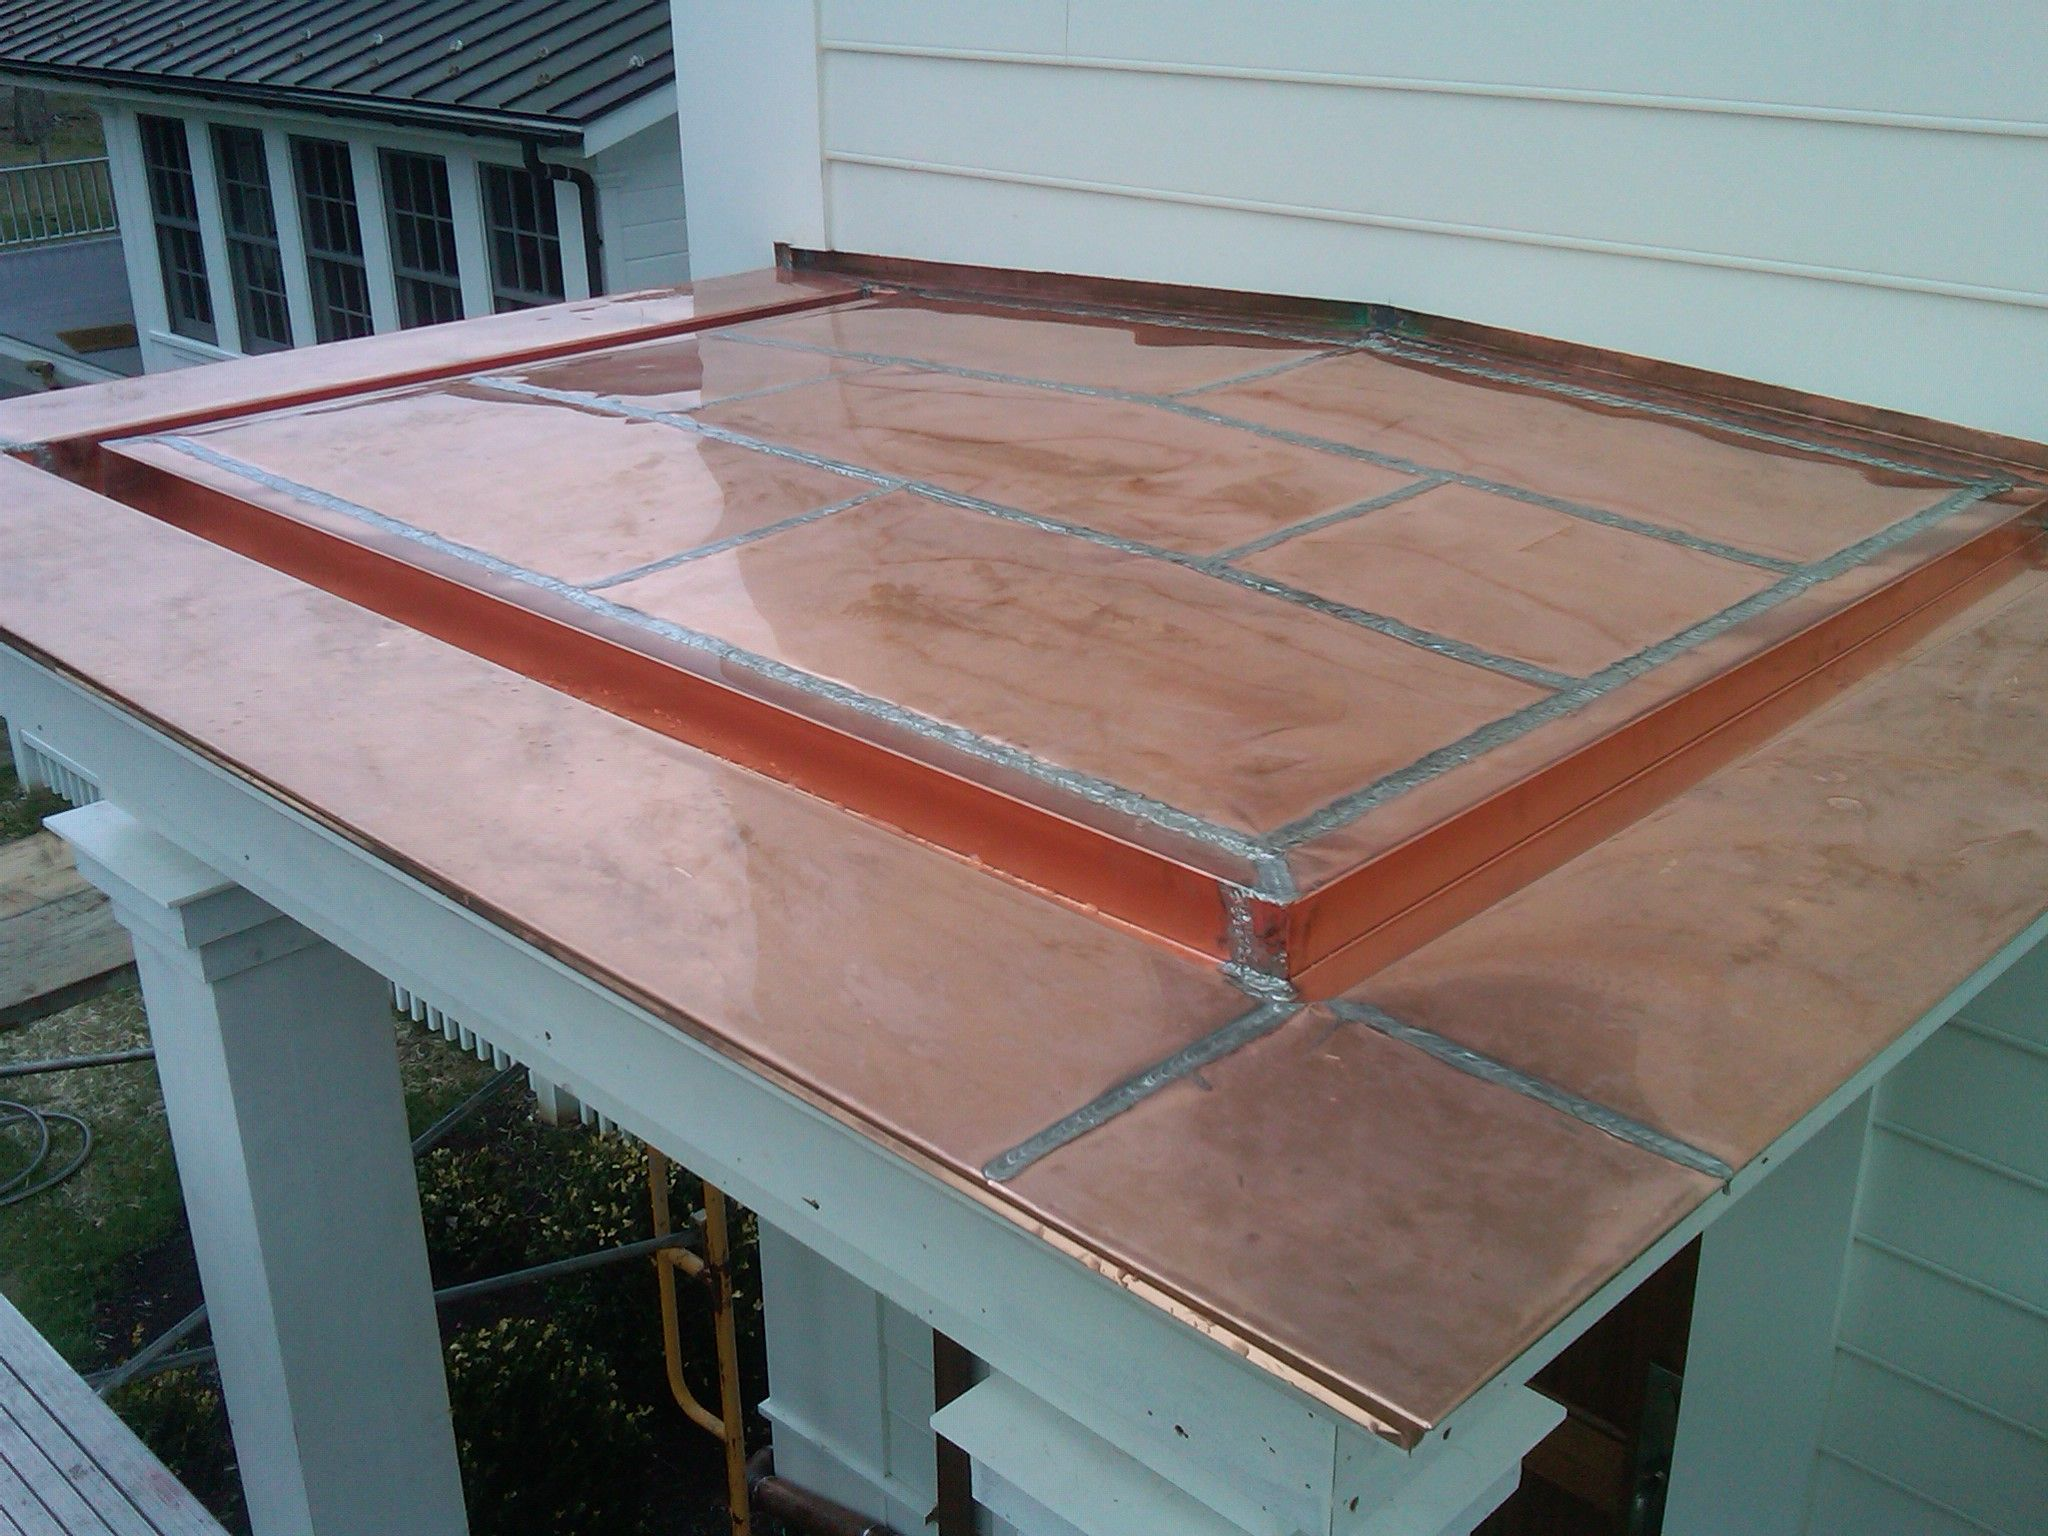 Flat Seamed Copper Porch Roof With Built In Gutter